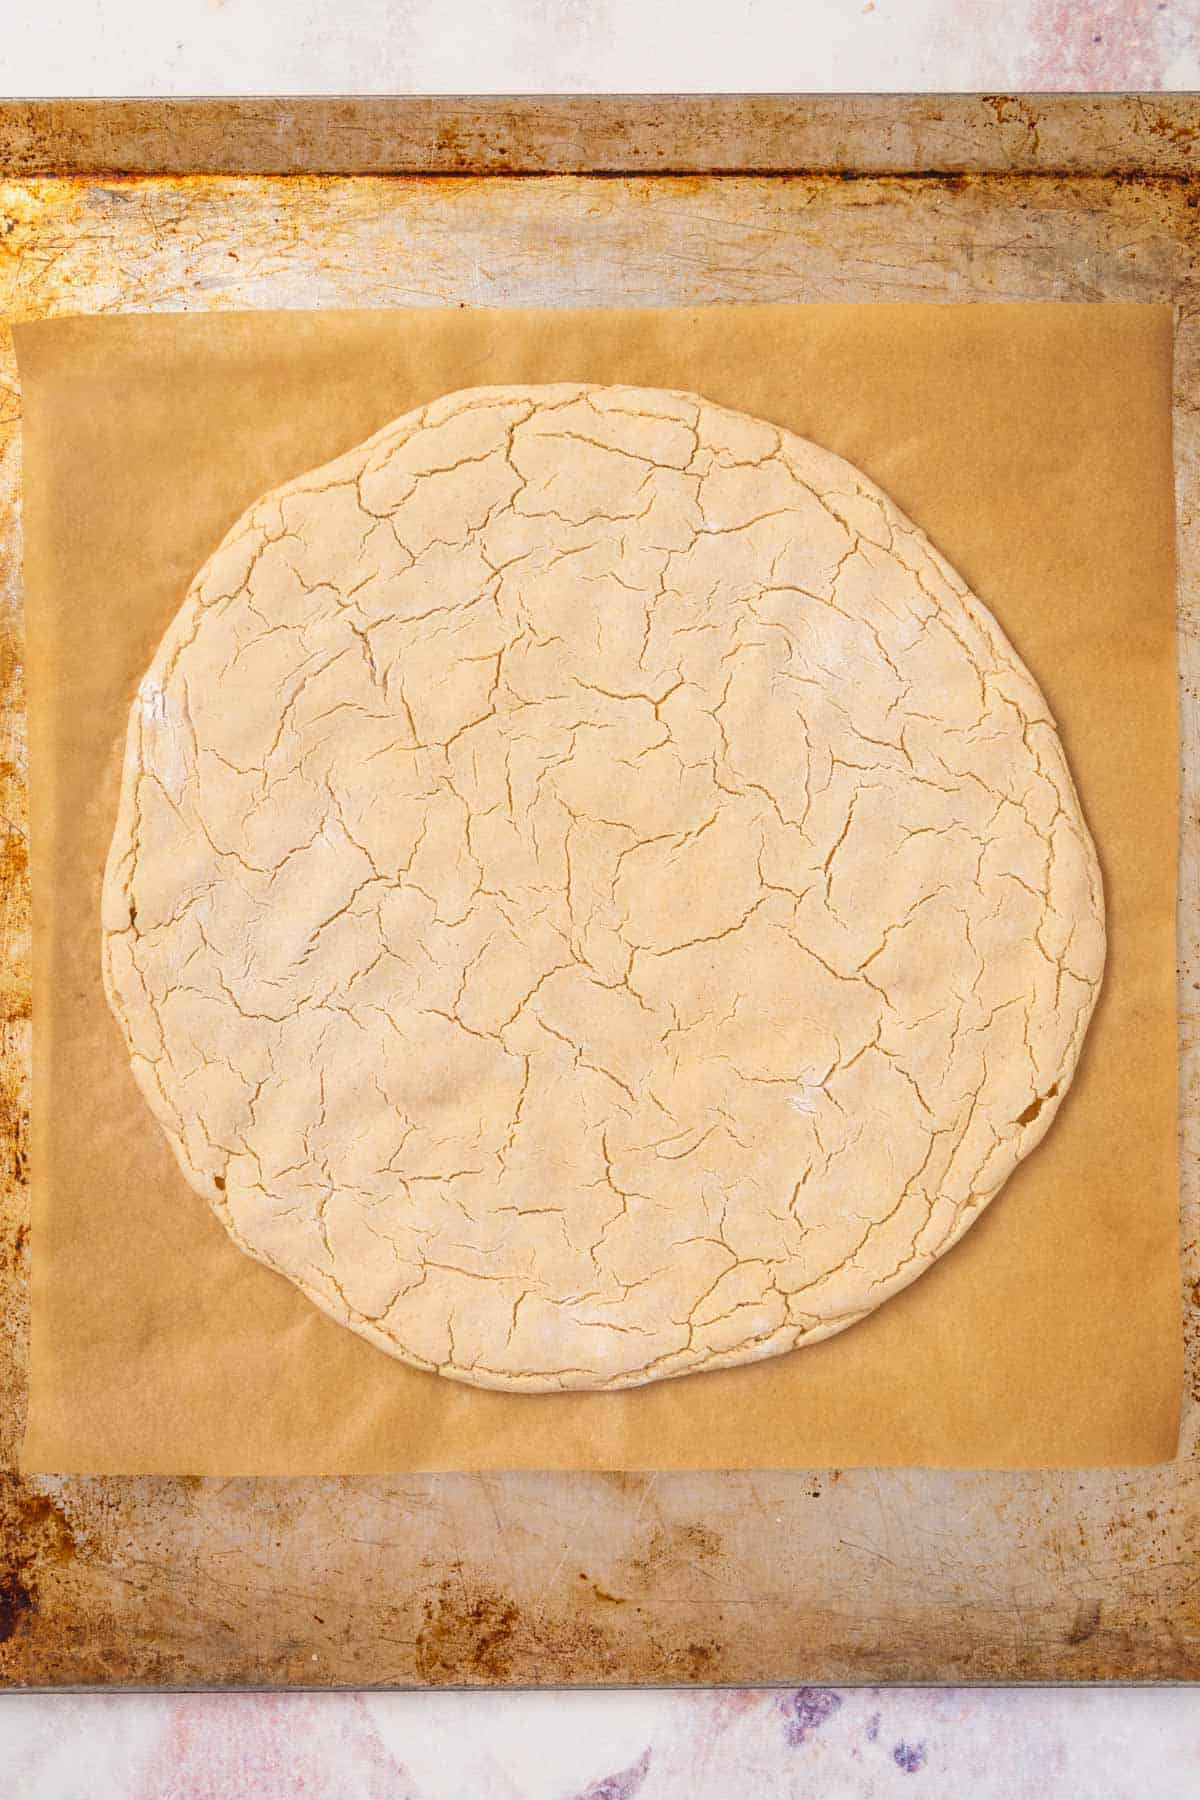 A Par-Baked Gluten-Free Pizza Crust on a Metal Pan Lined with Parchment Paper